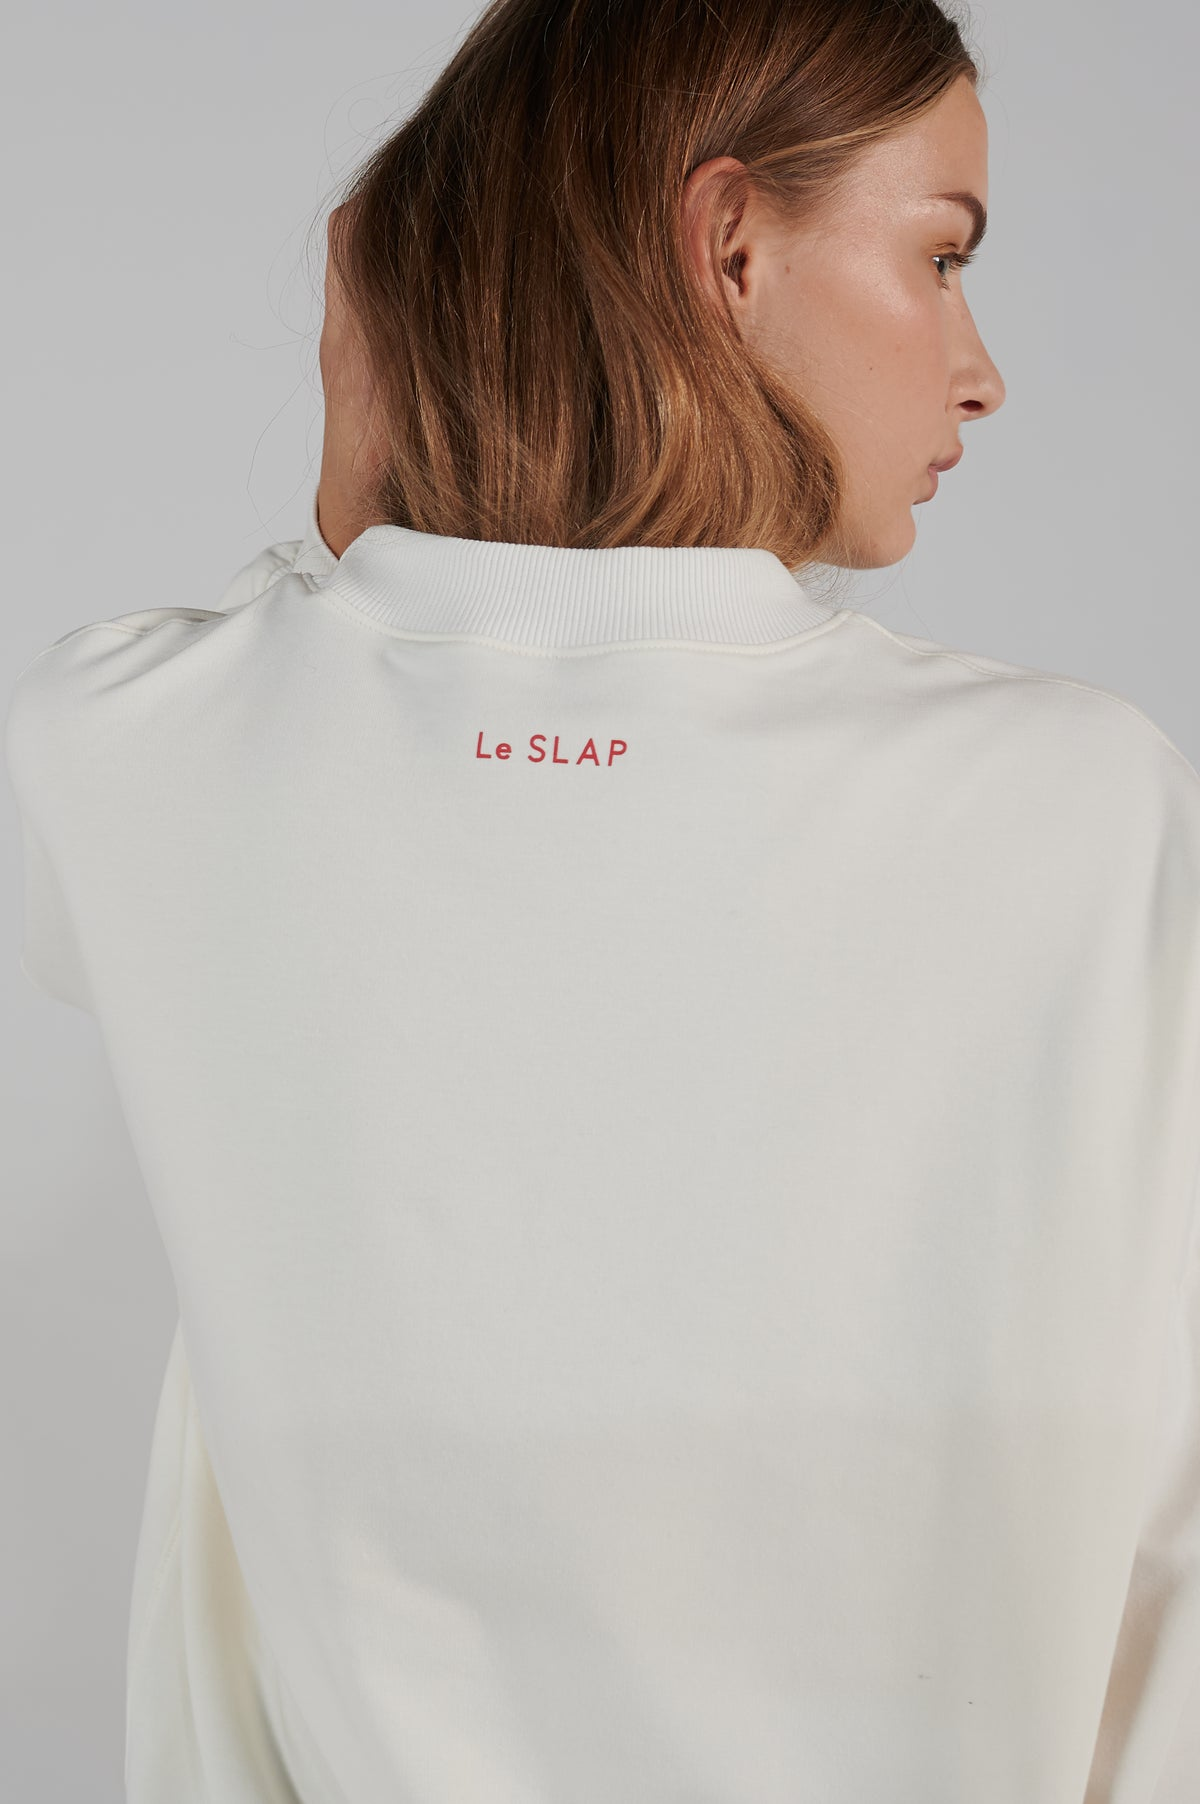 lifetime-line-red-logo-on-the-back-boxy-shape-sweater-le-slap.jpg